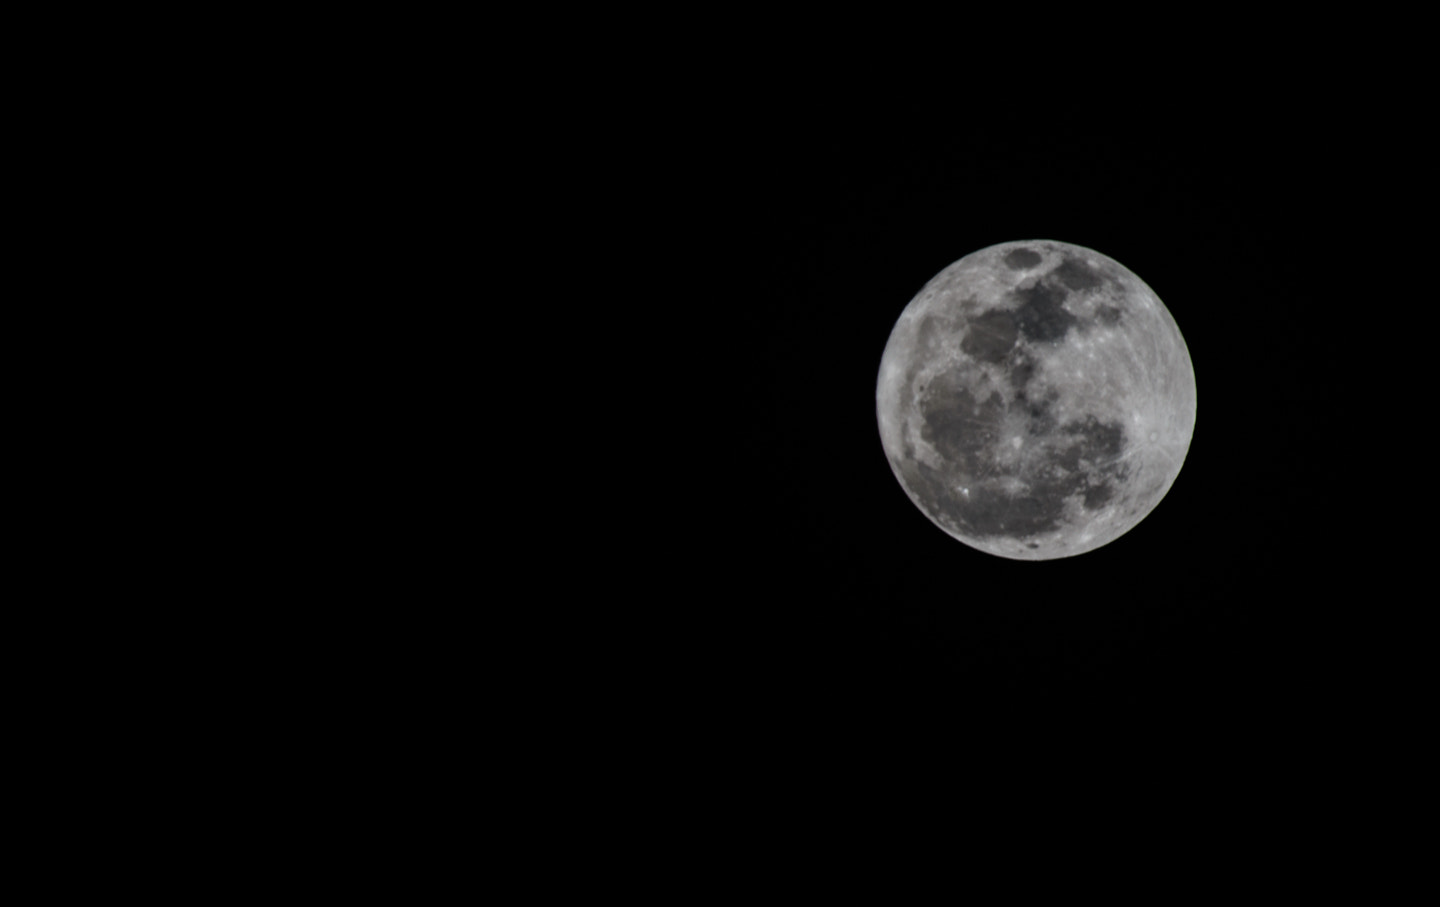 Photograph Just another shot of the moon by Preston Hutson on 500px